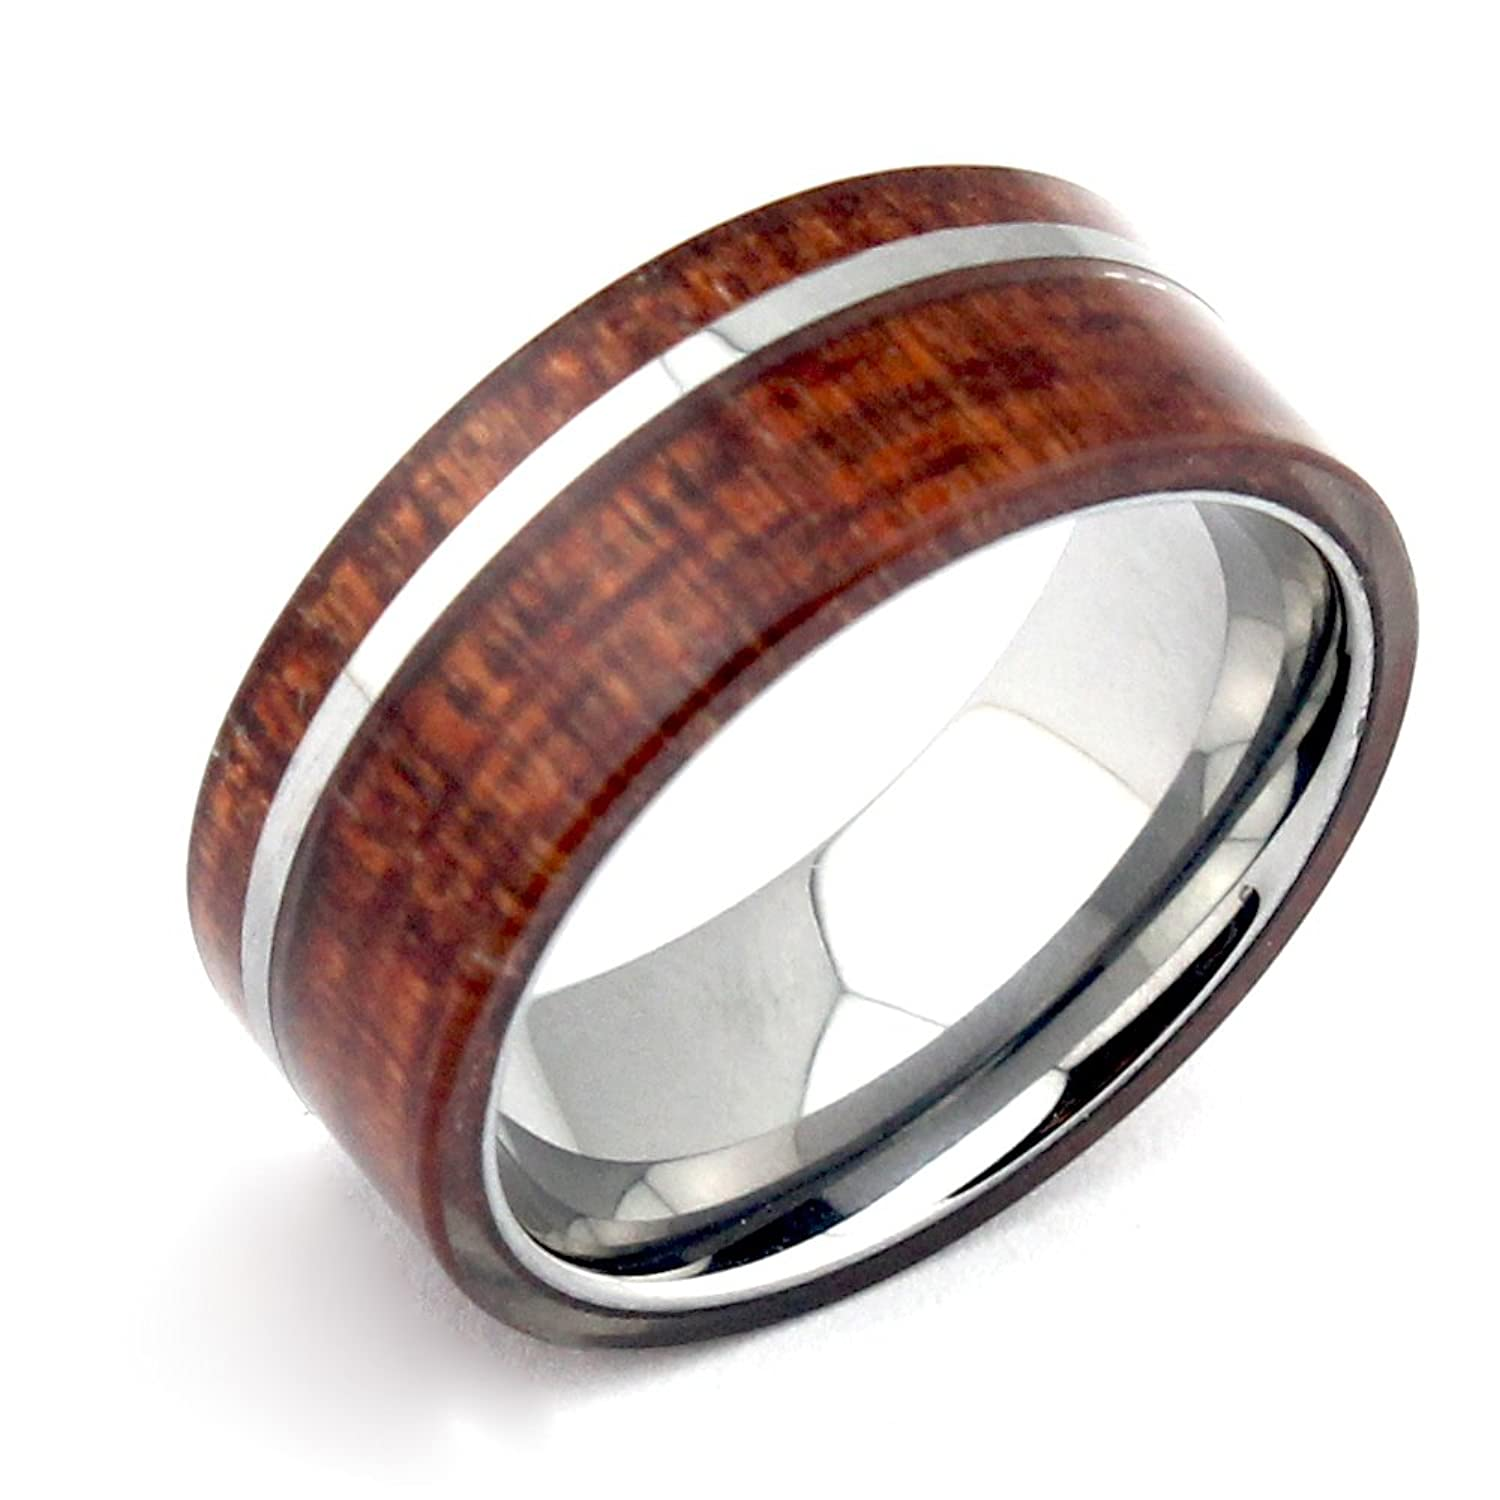 will queen hawaii koa wood inlay mens tungsten wedding bands with mirror polished tungsten stripe 8mm promise rings for couples engagement matching rings - Mens Unique Wedding Ring